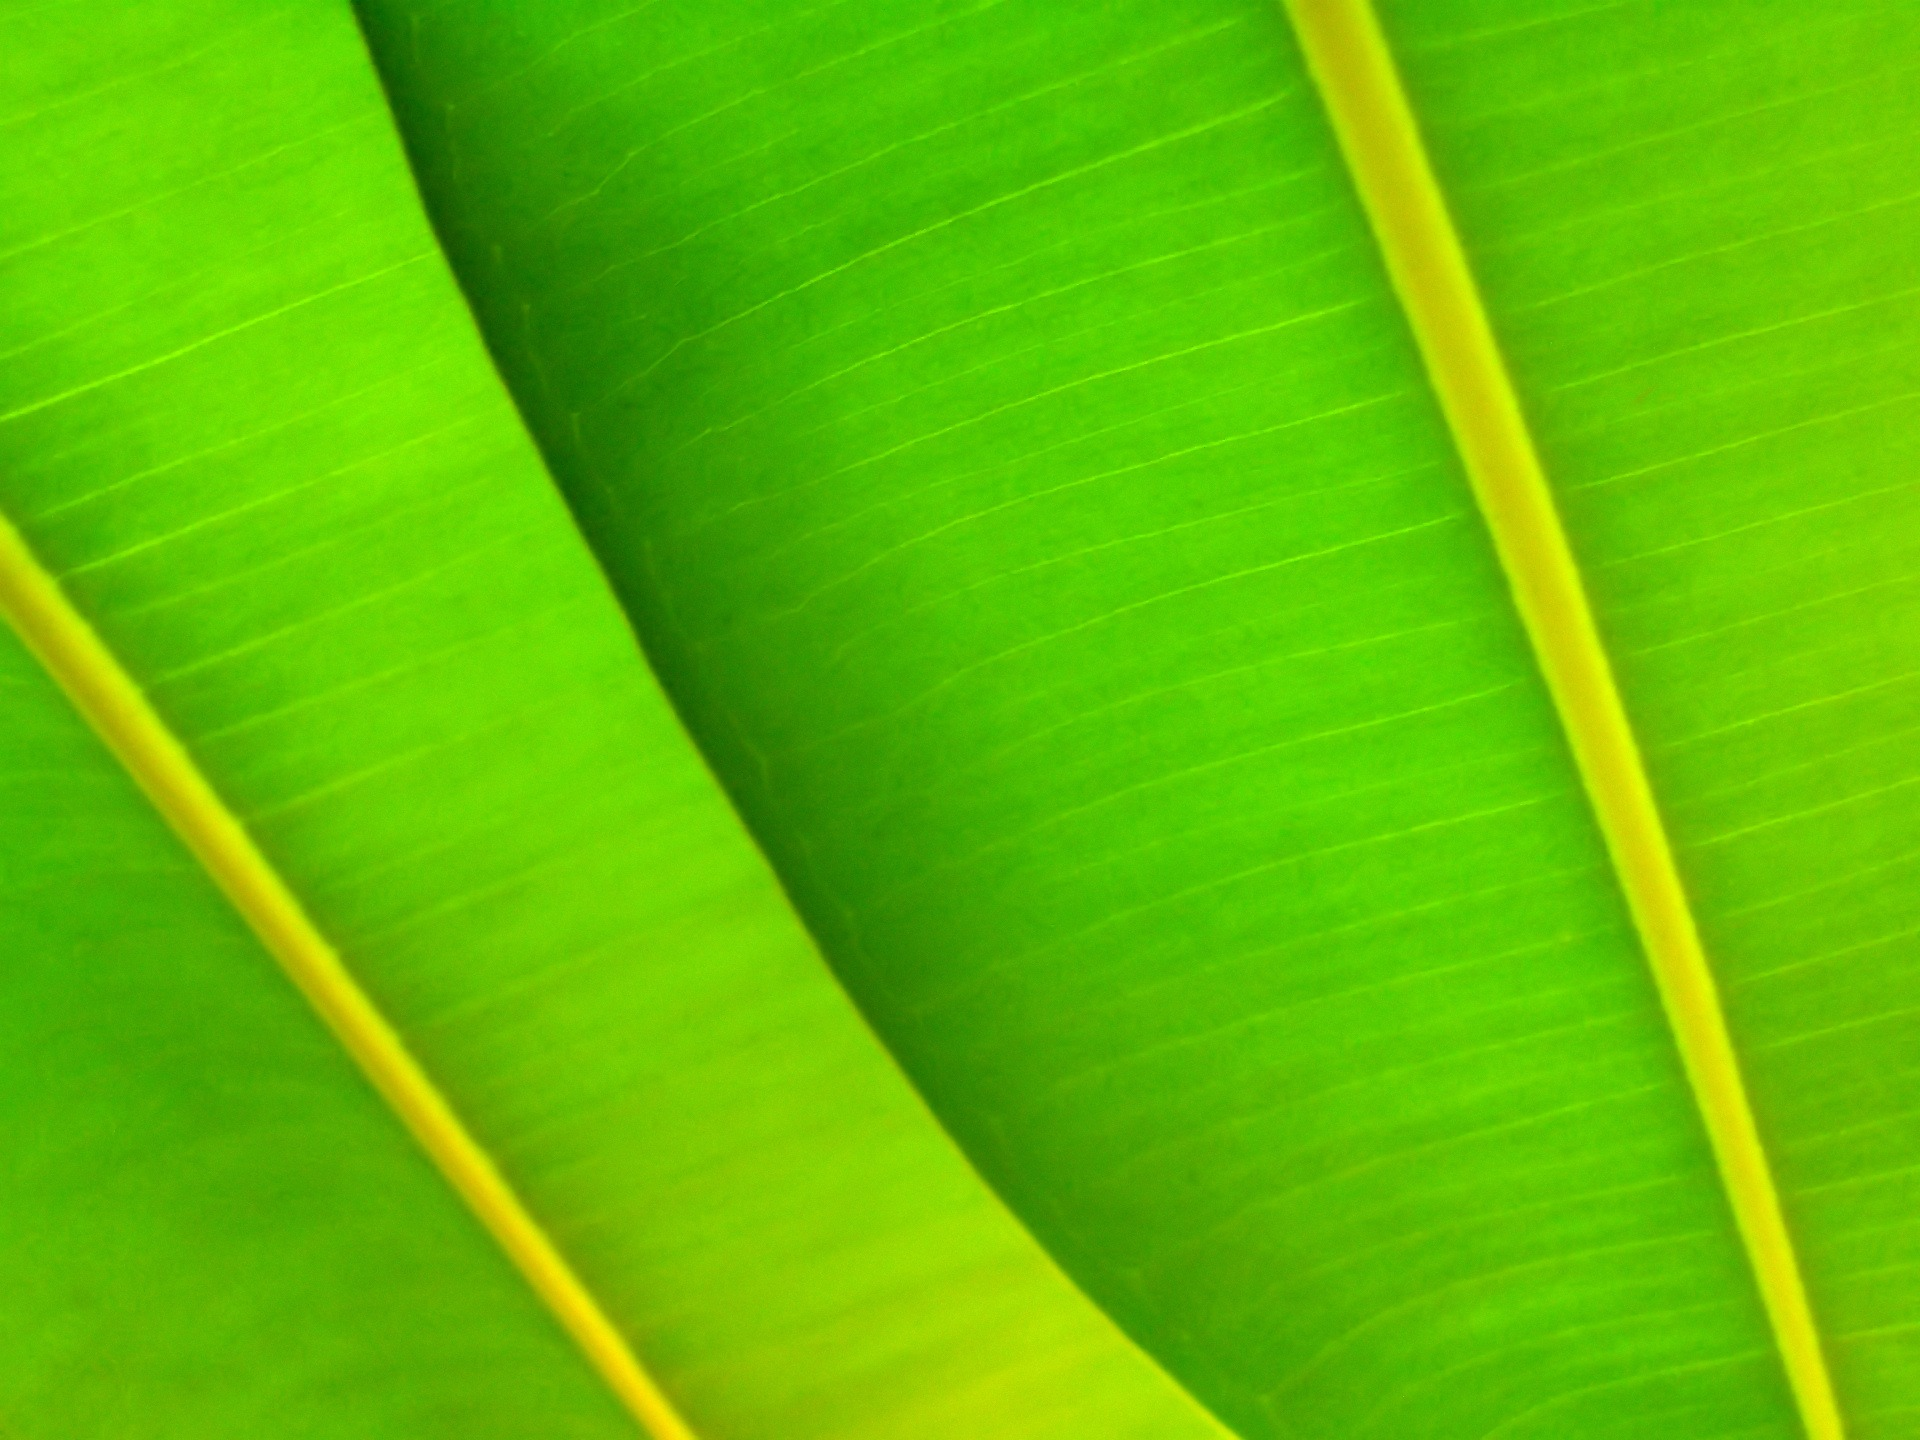 Green leafs Wallpaper Plants Nature Wallpapers in jpg format for